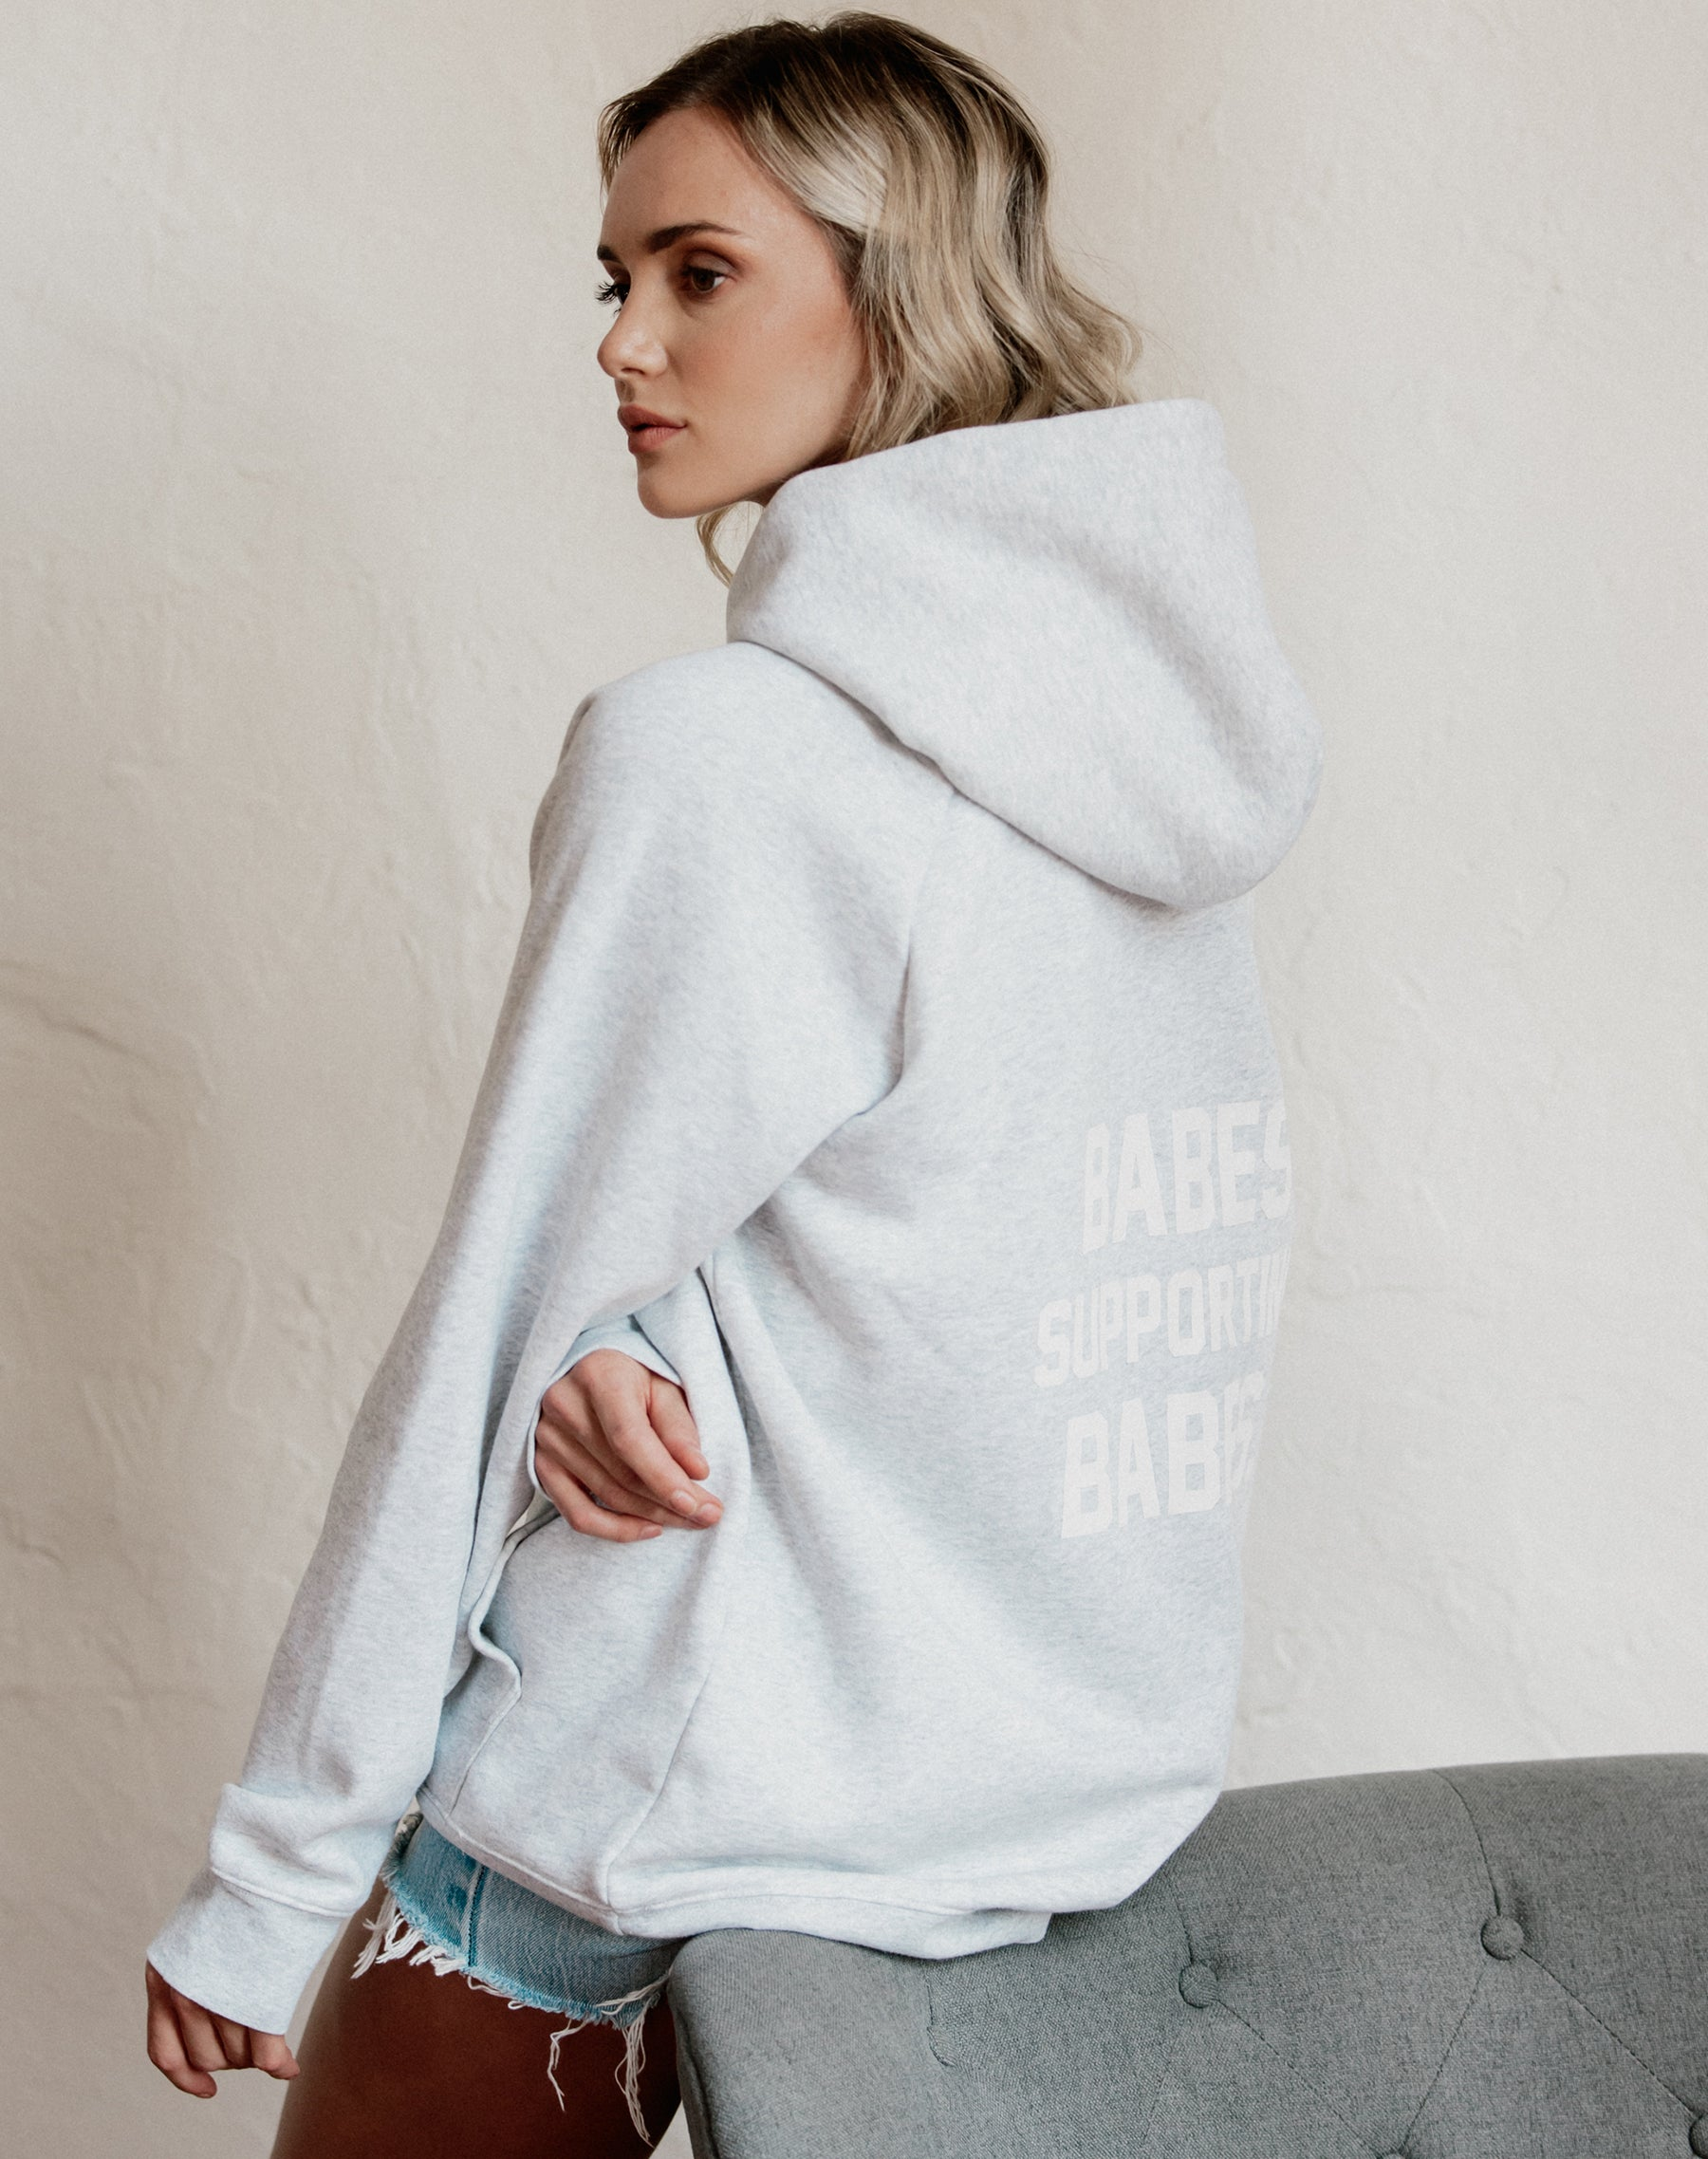 "Brunette The Label ""Babes Supporting Babes"" Hoodie"